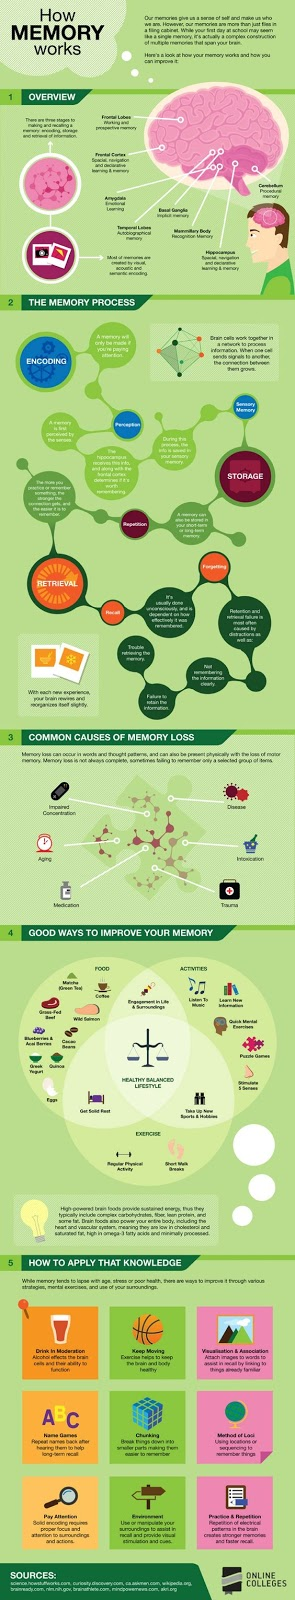 memory and how it works